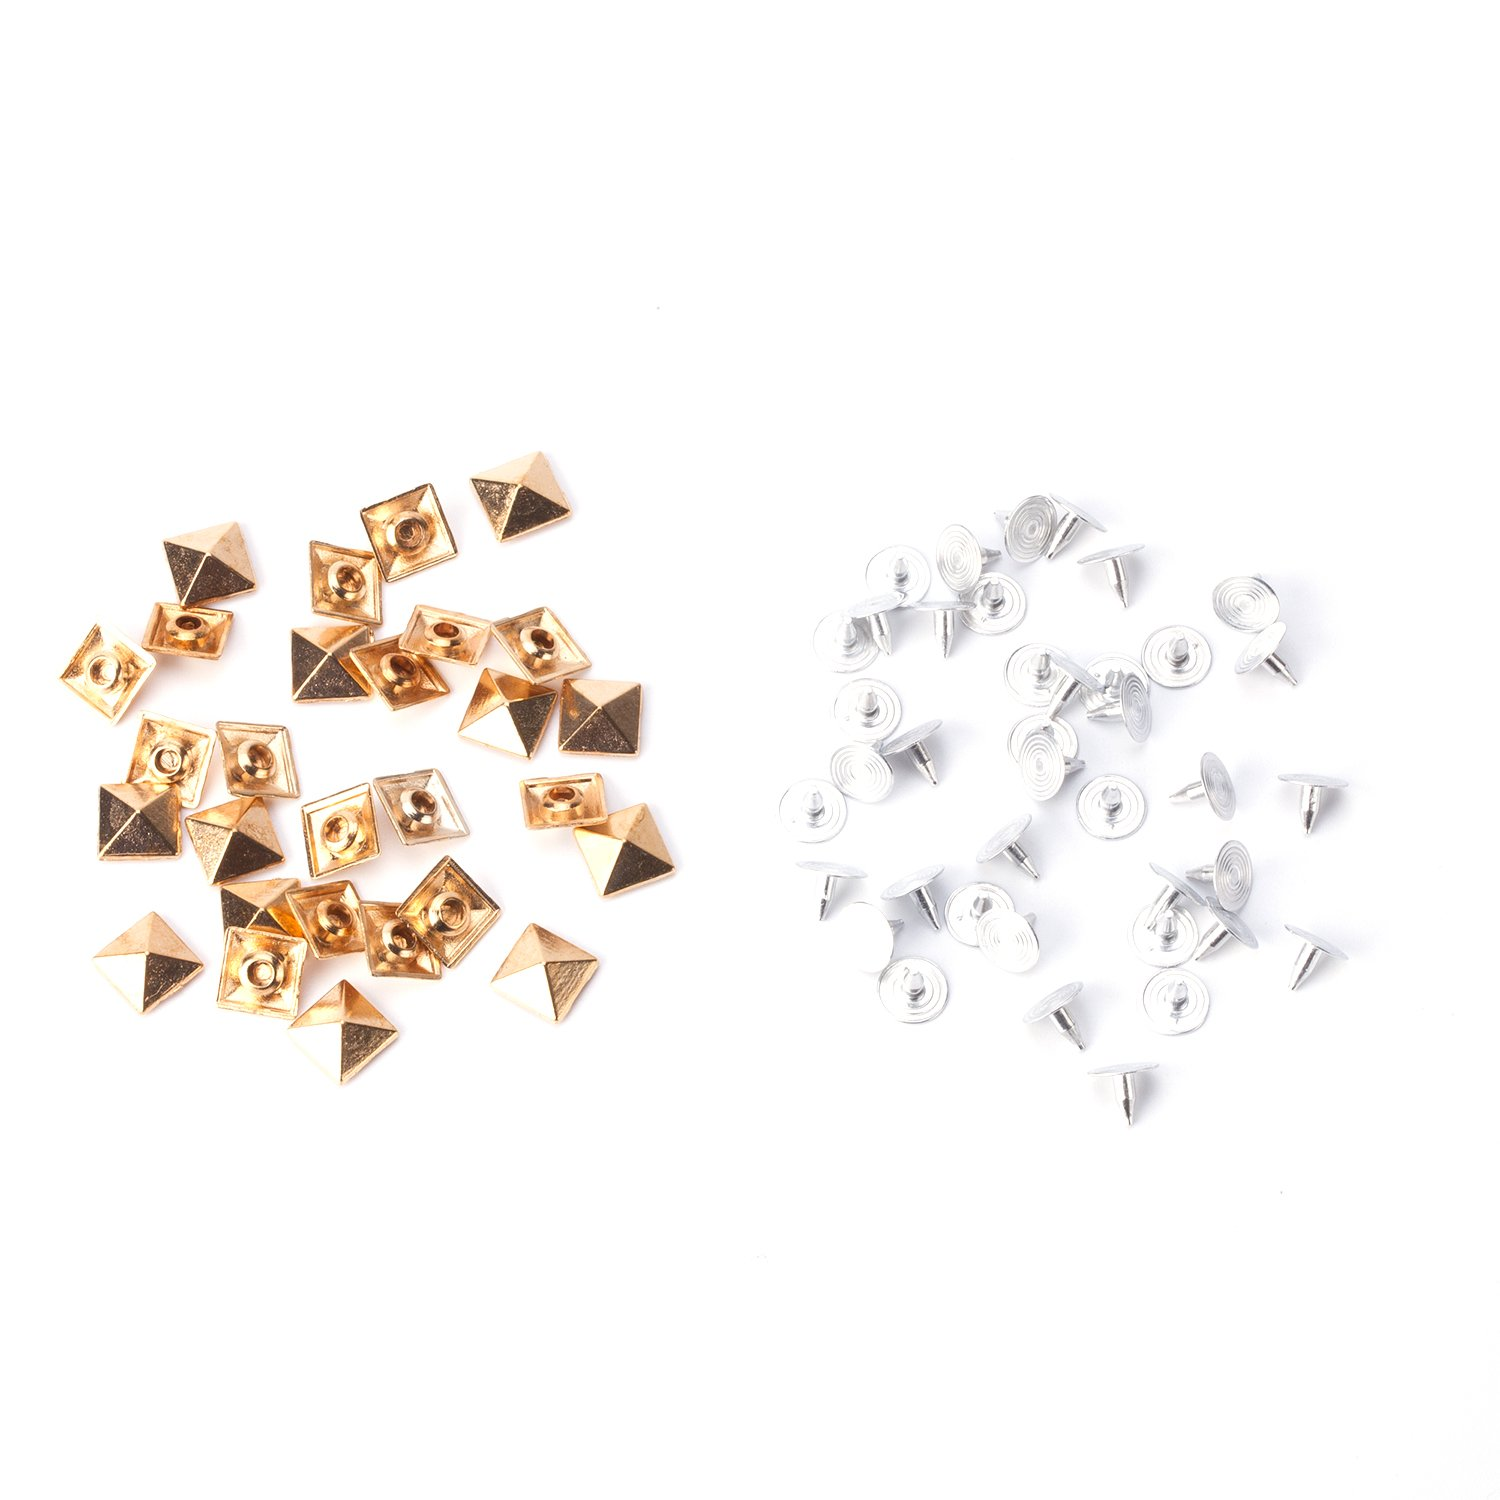 100 x 7mm Gold Square Pyramid Punk Spike Studs Rivets for Leather Clothing Jeans Bags Arts and Craft Embellishment by Trimming Shop